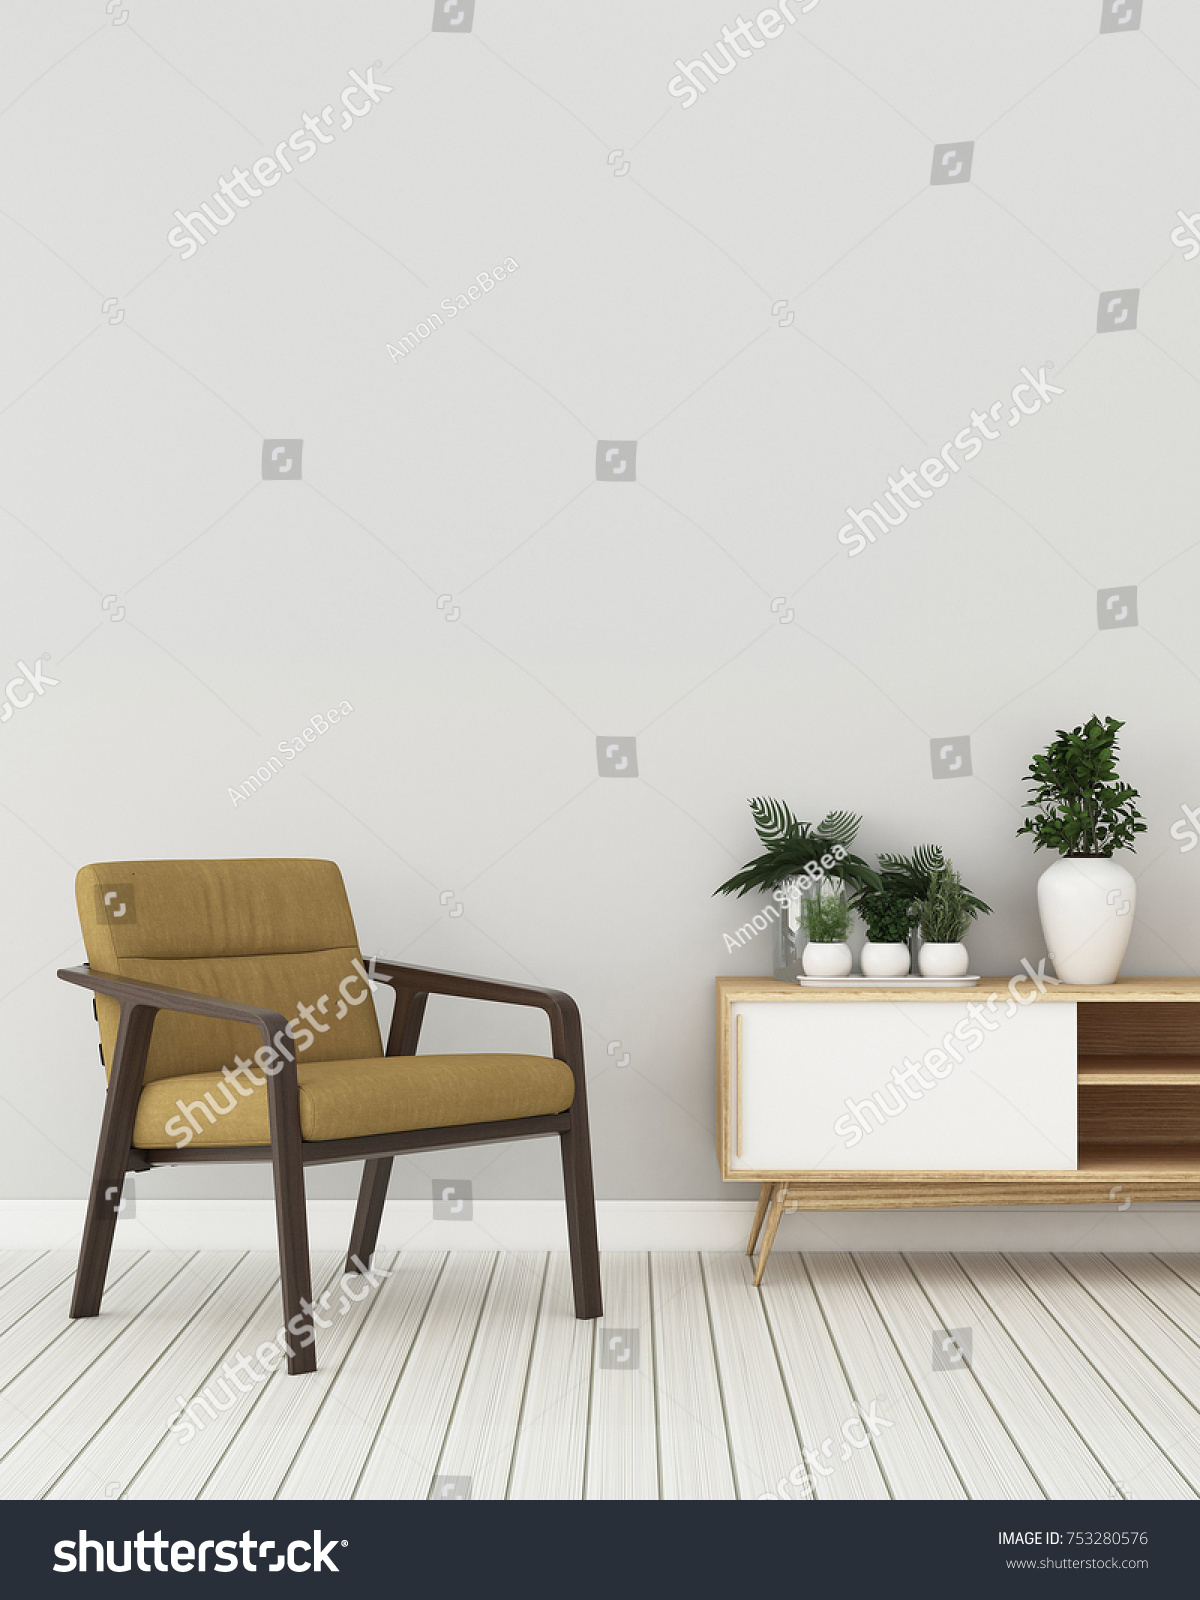 Cozy Space Houseempty Room Wooden Chair Stock Illustration 753280576 ...